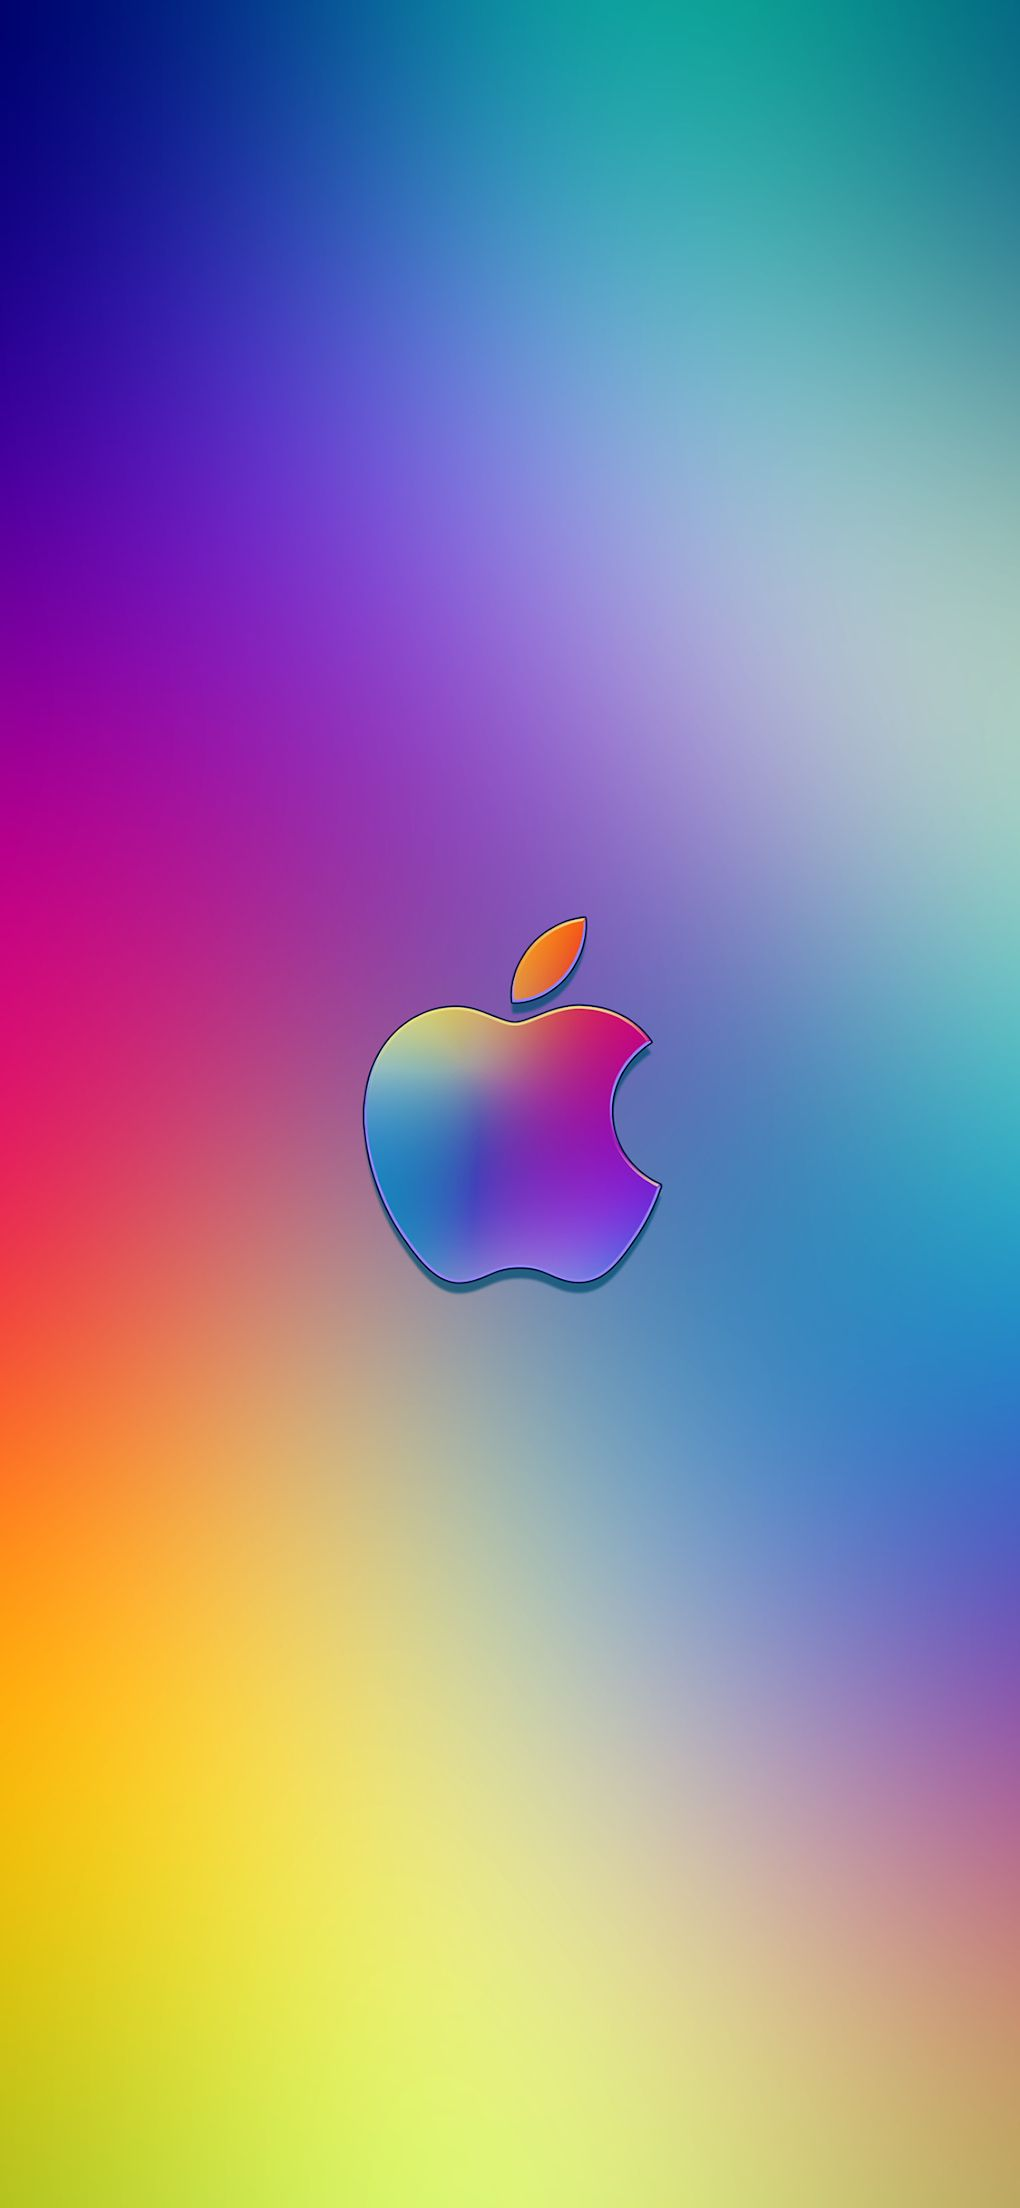 Pin By Greg Biggs On Wallpaper Apple Logo Wallpaper Iphone Apple Wallpaper Iphone Apple Wallpaper